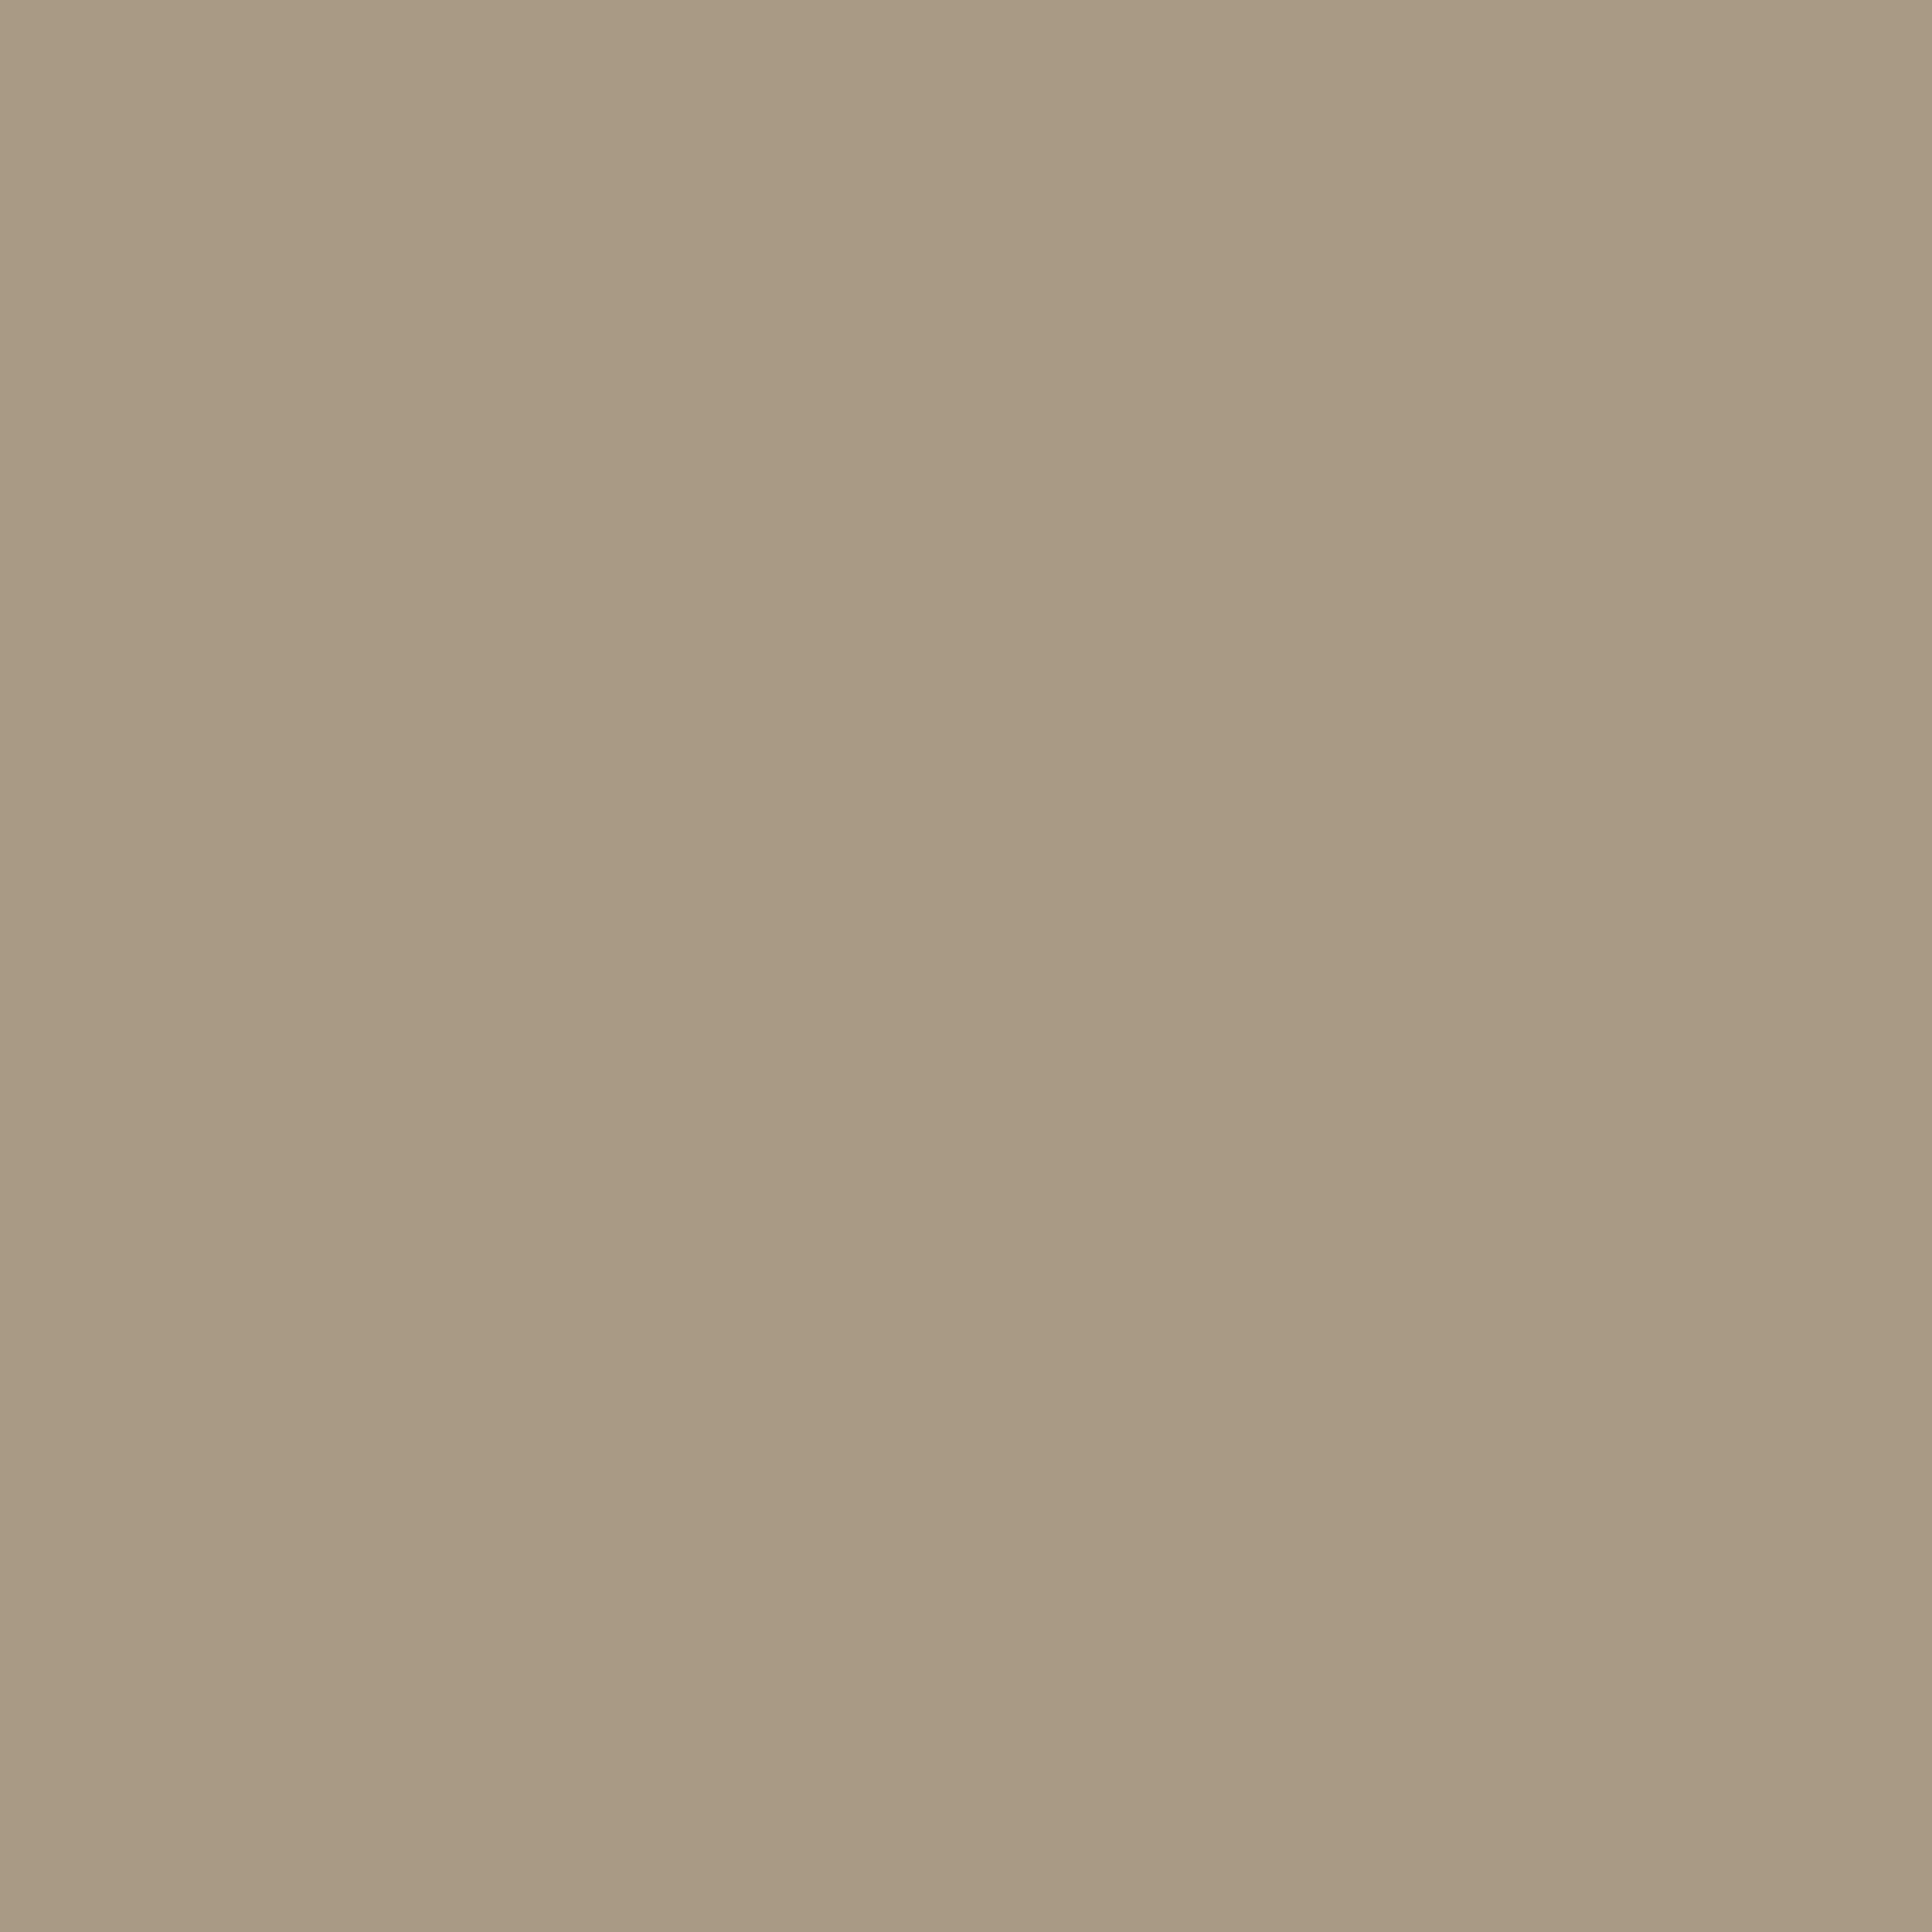 3600x3600 Grullo Solid Color Background